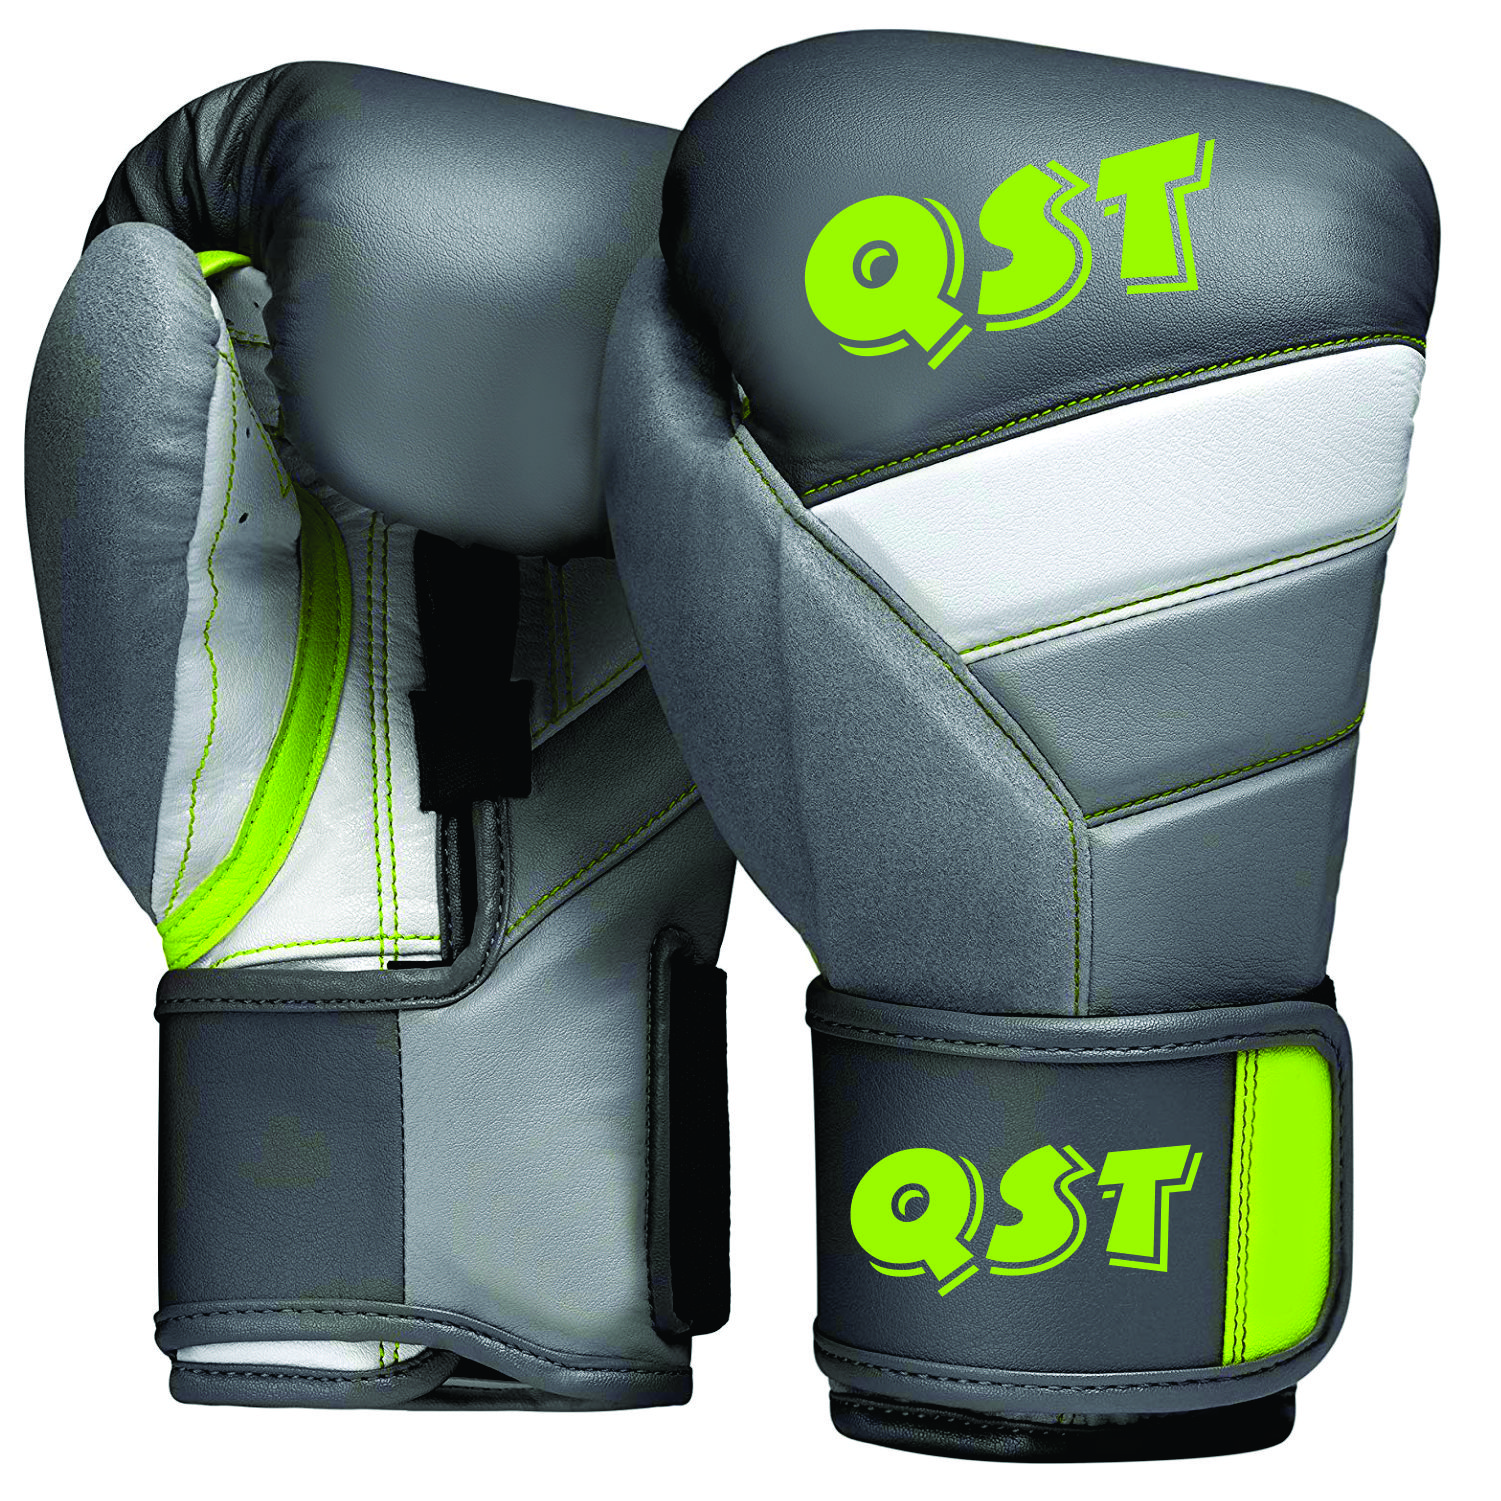 Training Boxing Gloves - PRG-2036